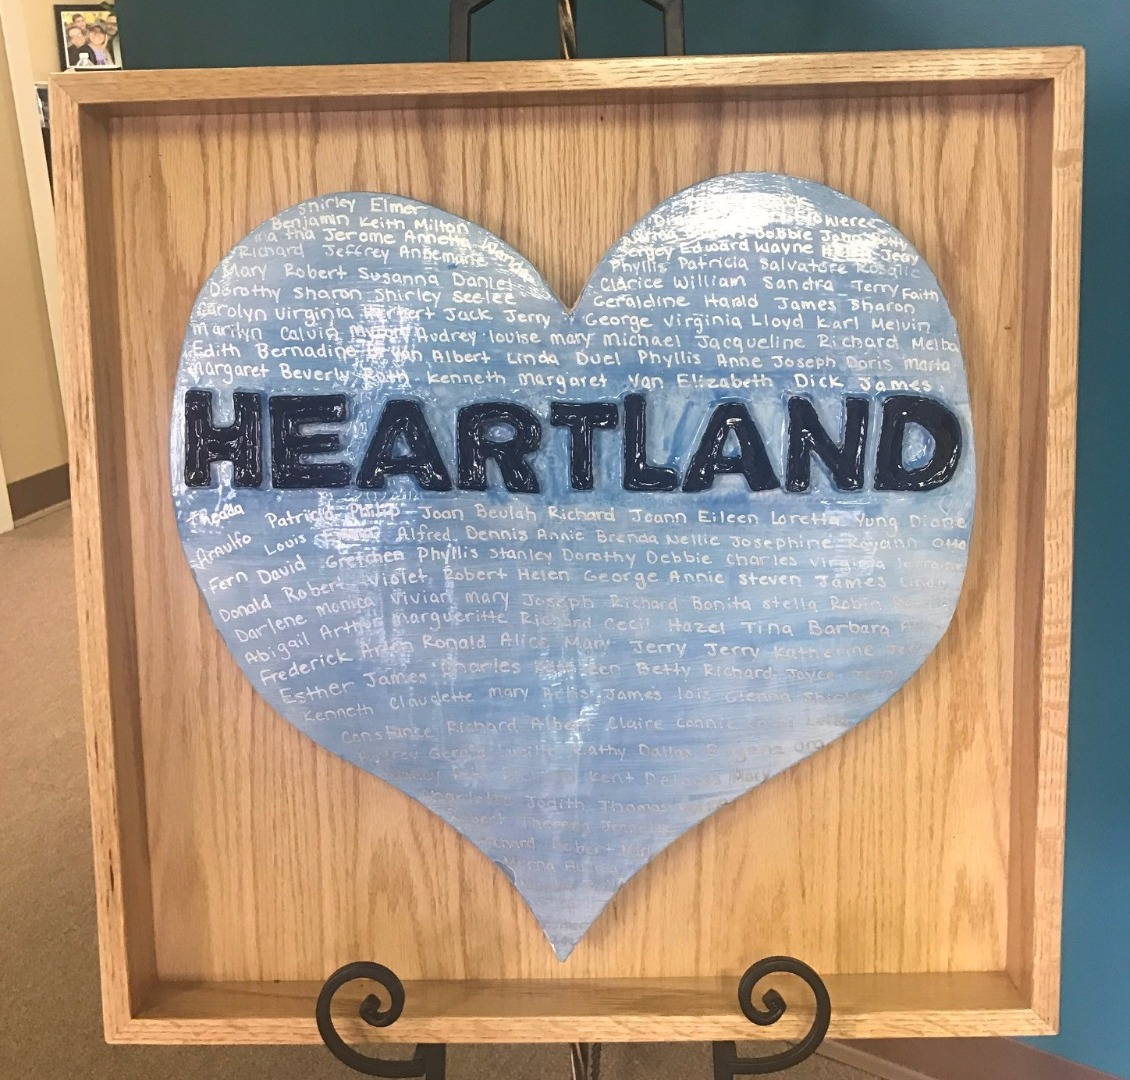 becoming a heartland with more heart Update 2013: heat in the heartland analysis updated with new 2011 and 2012  data  such as diabetes, respiratory disease, kidney disease, and heart disease   heat waves lasting three days or more have become more common over the.